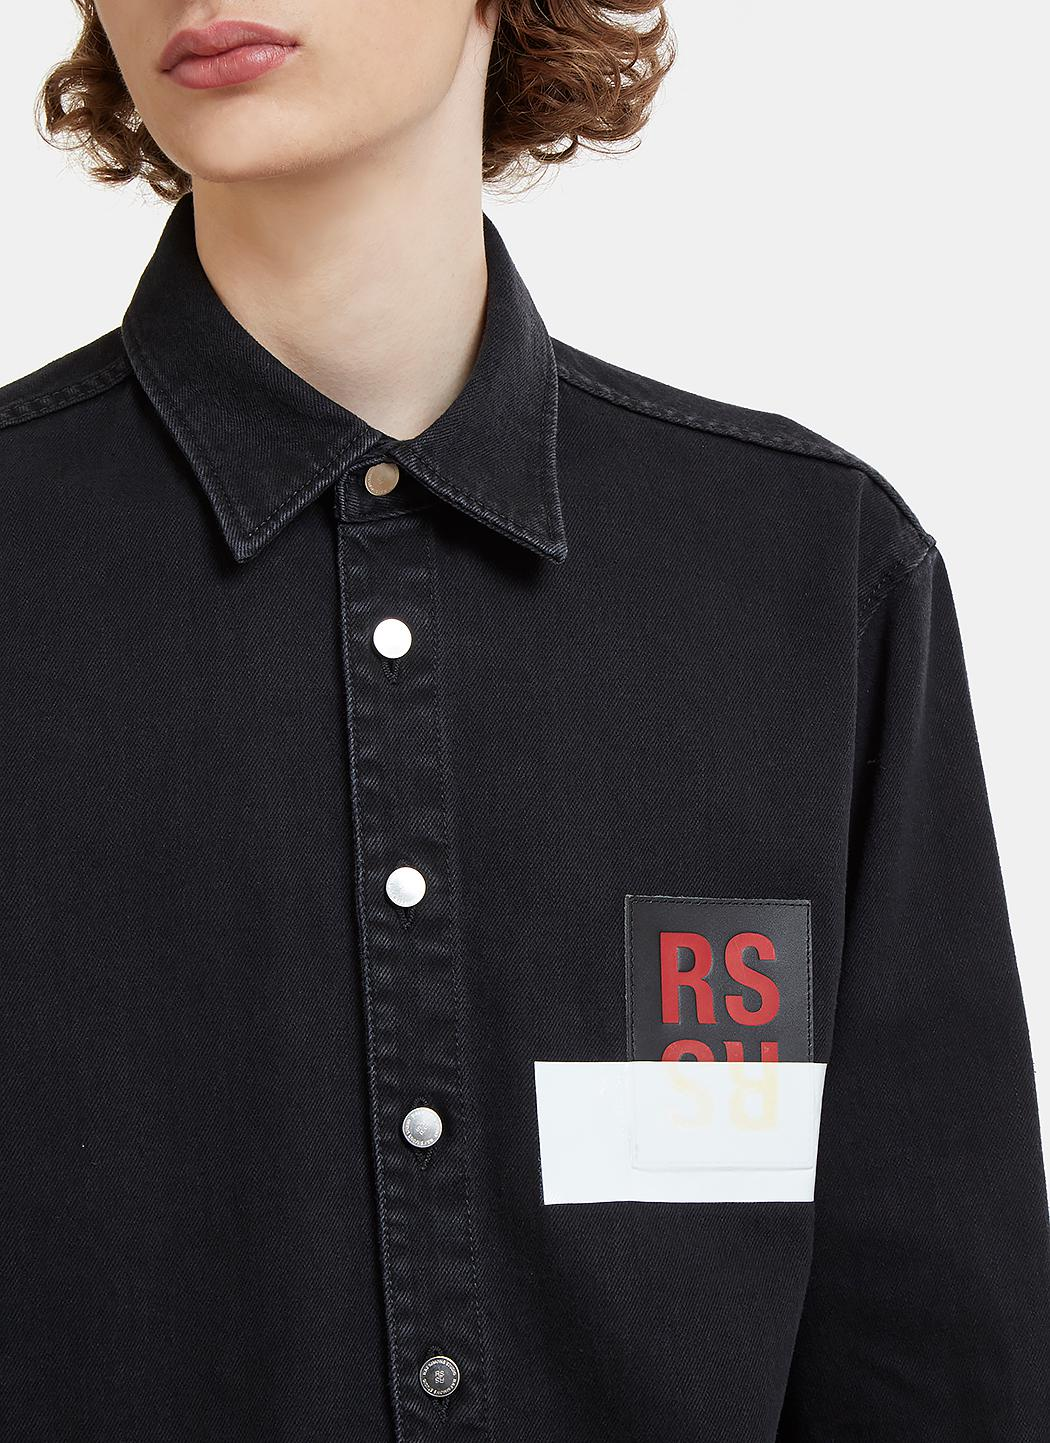 b684c953b92 Lyst - Raf Simons Rs Leather Patch Denim Shirt In Black in Black for Men